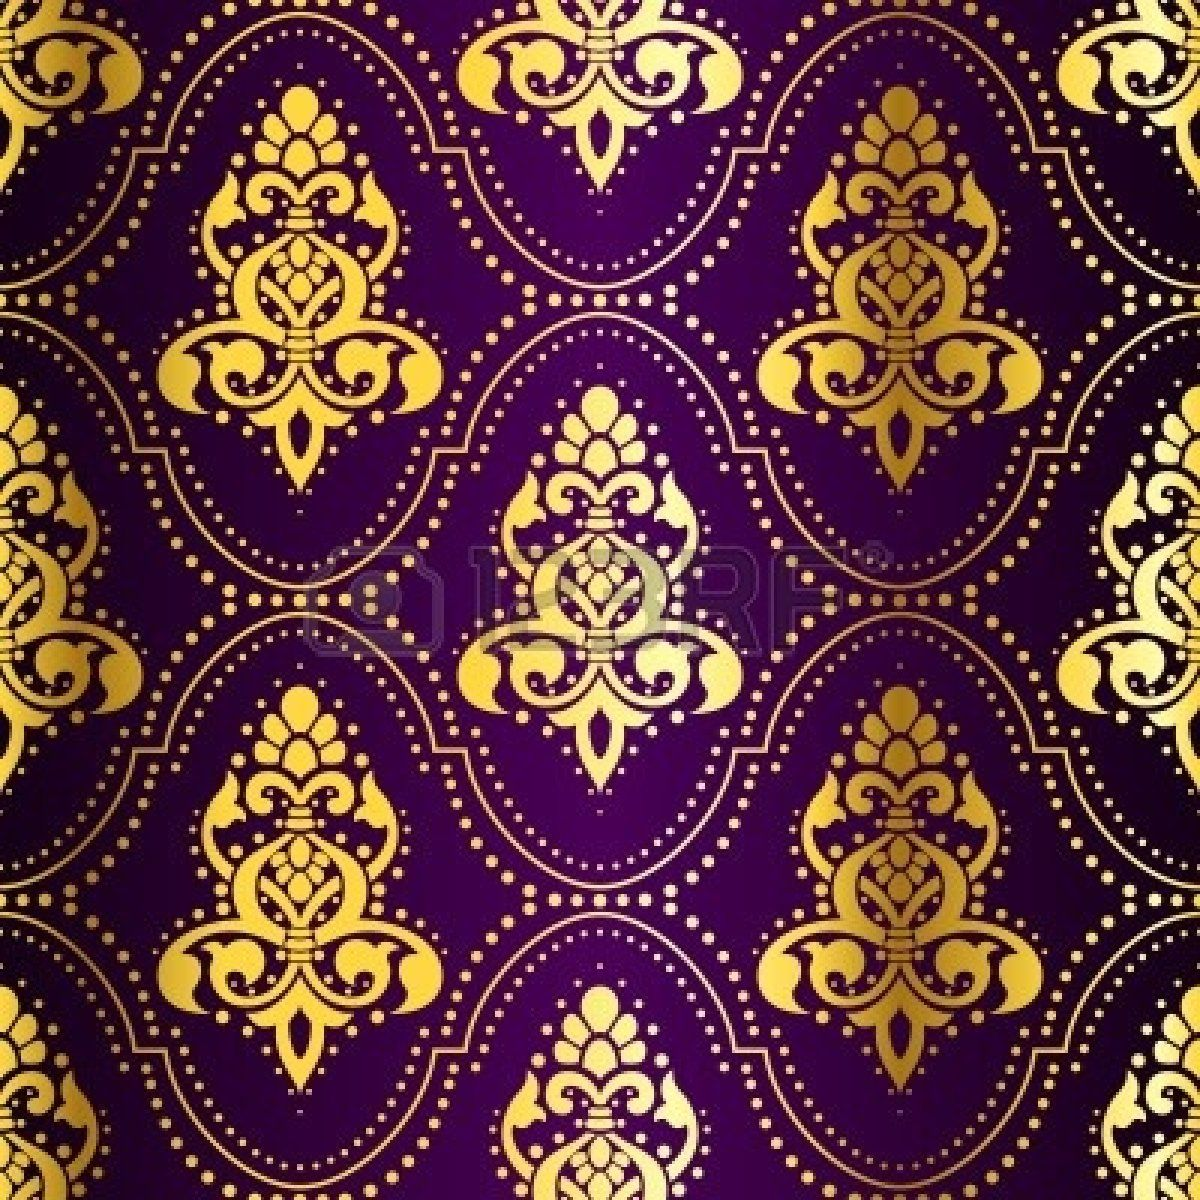 Black bed sheet texture seamless - Indian Saree Gold On Purple Seamless Indian Pattern With Dots The Tiles